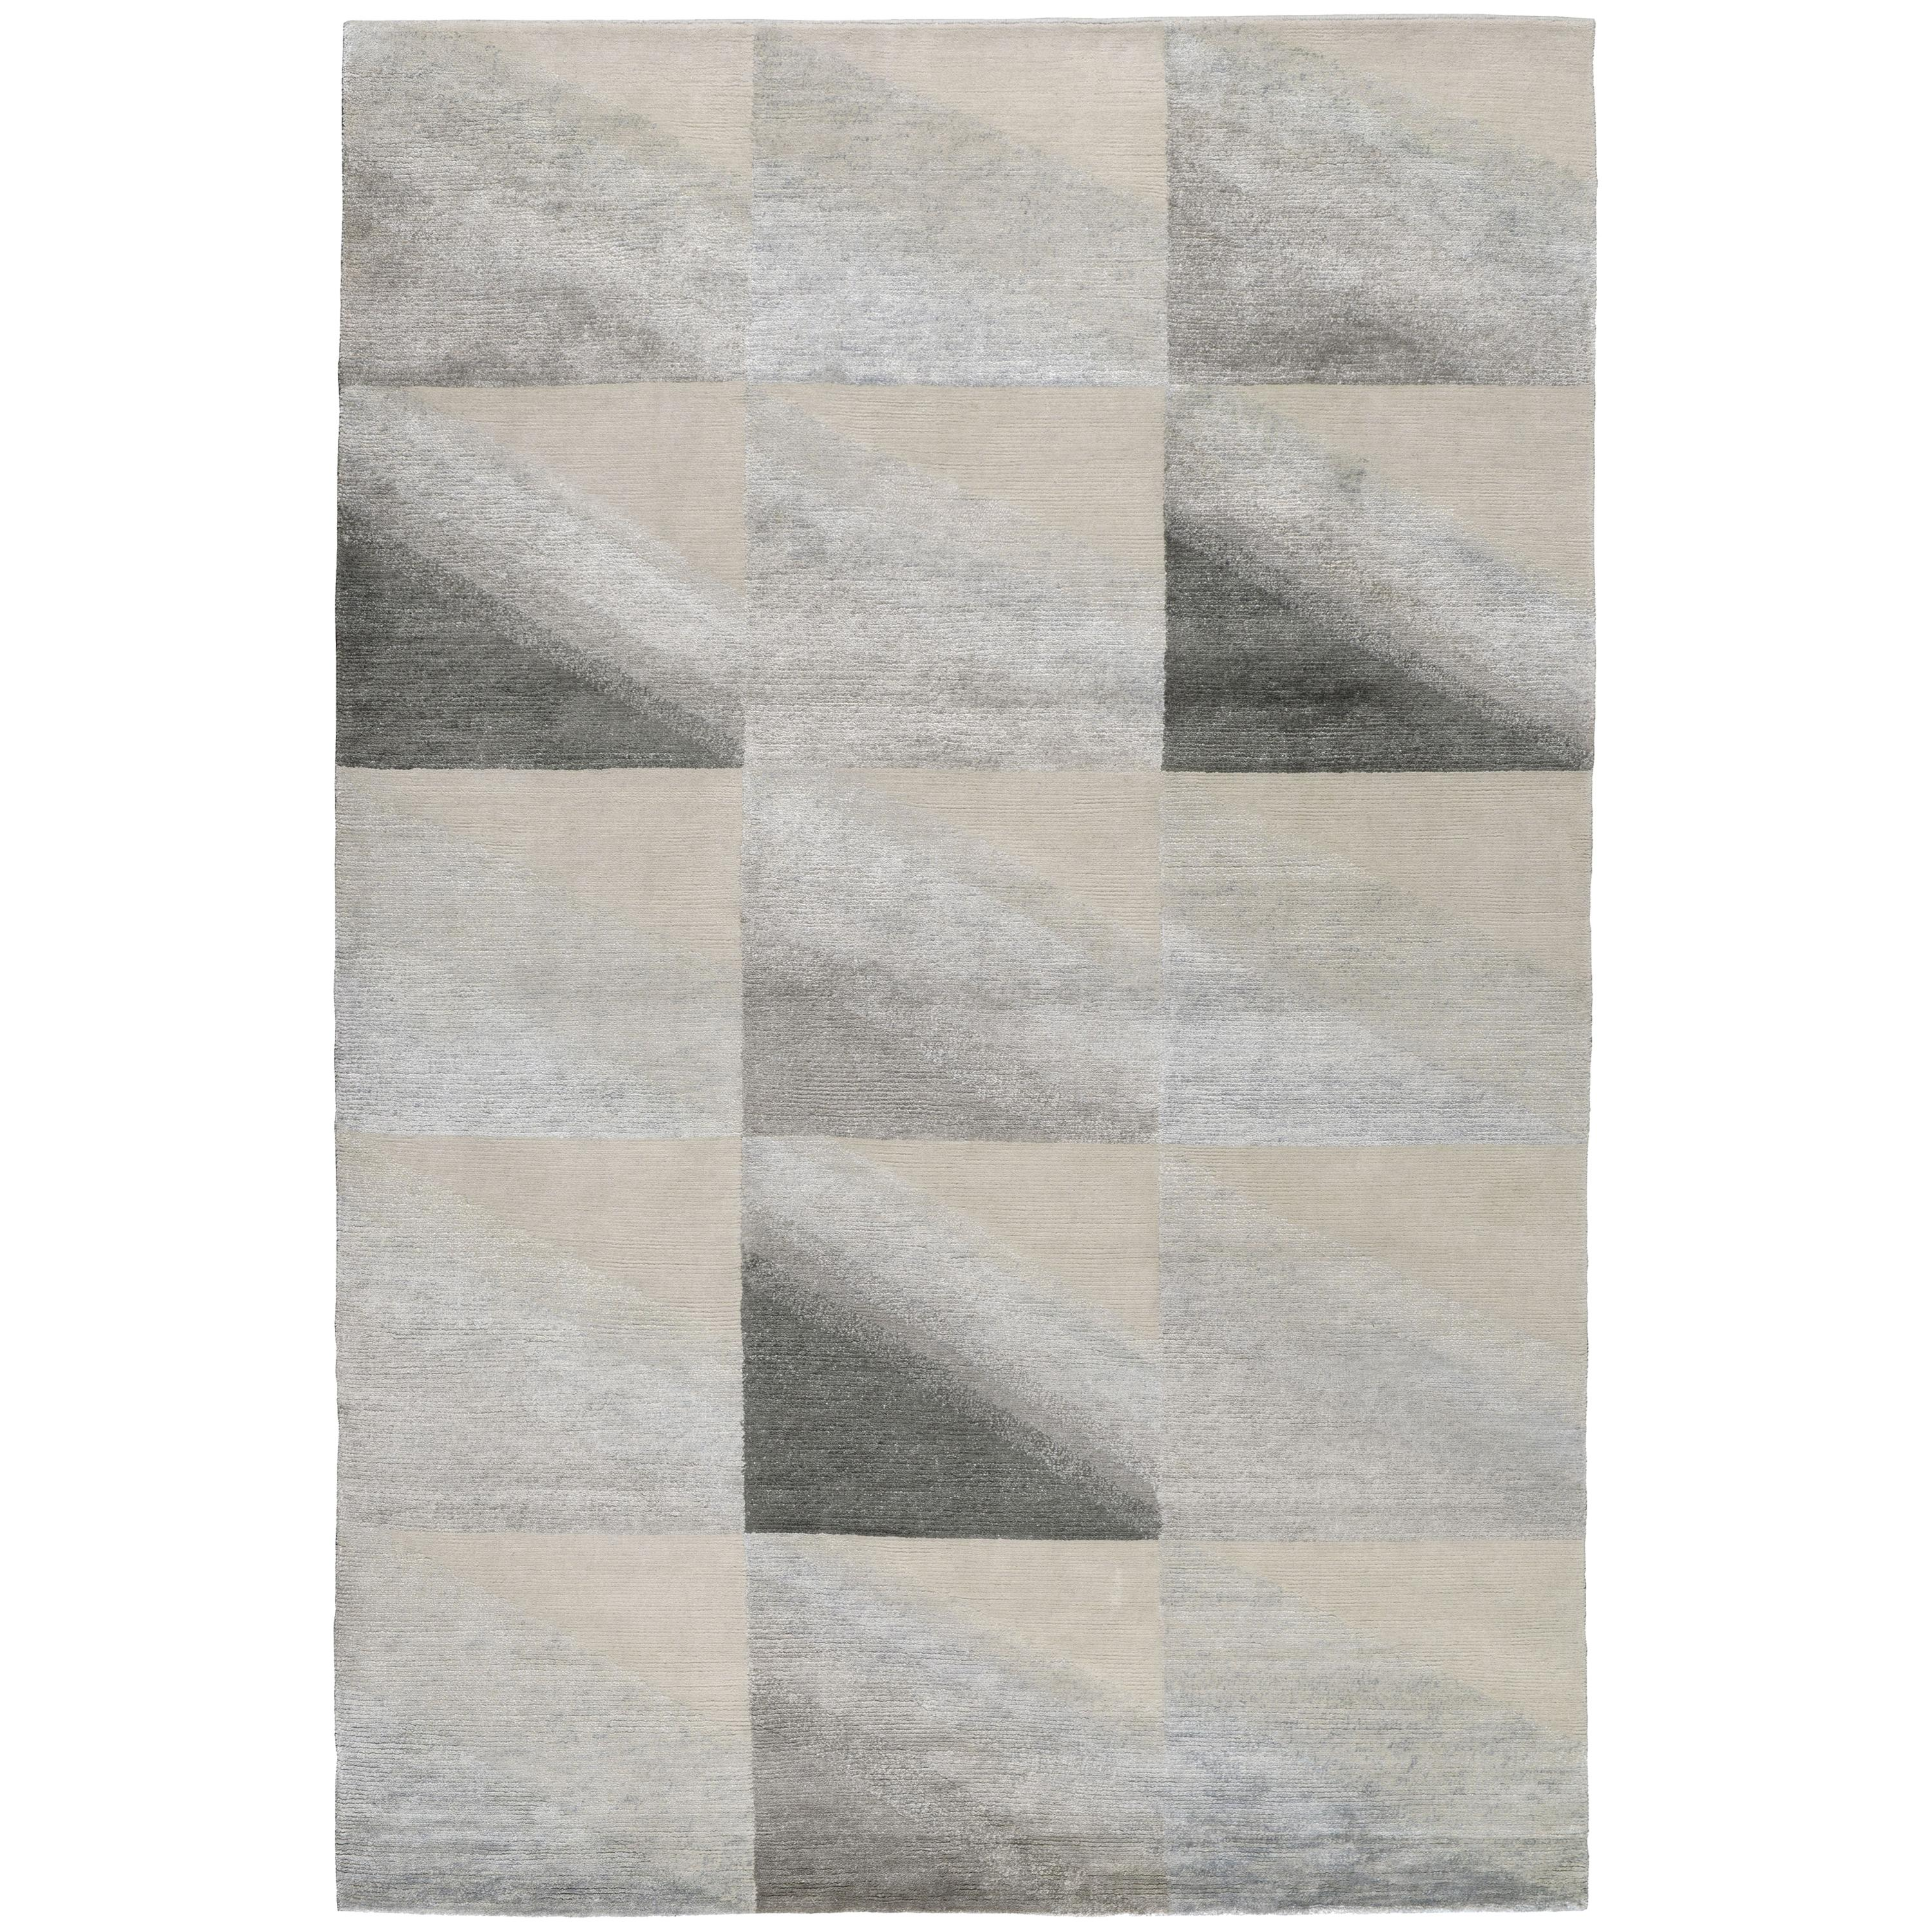 Illumé Hand-Knotted 10x8 Rug in Wool and Silk by Kelly Wearstler